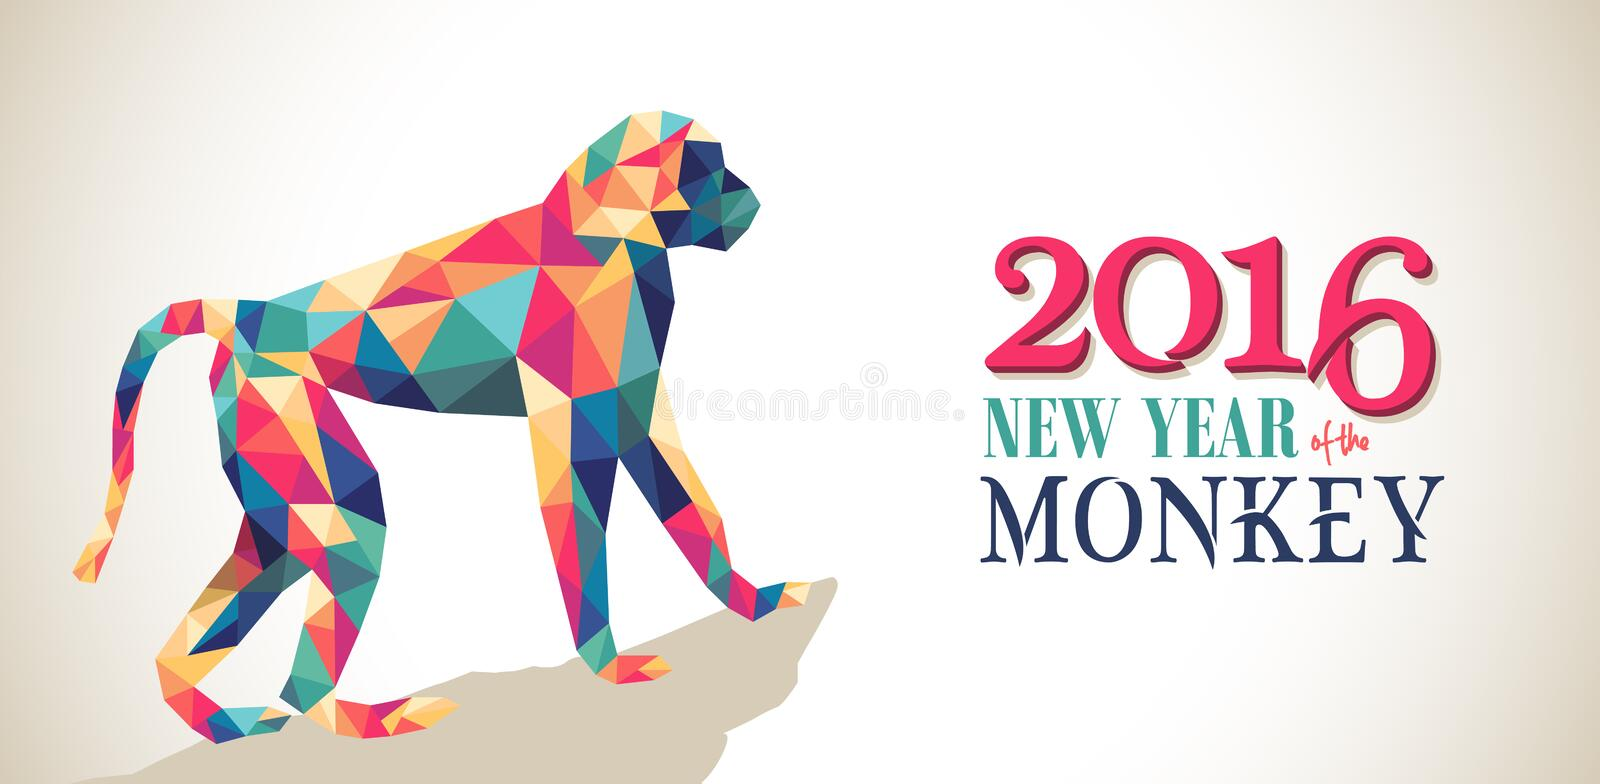 Happy china new year monkey 2016 triangle banner. 2016 Happy Chinese New Year of the Monkey banner with colorful hipster low poly triangle ape and text. EPS10